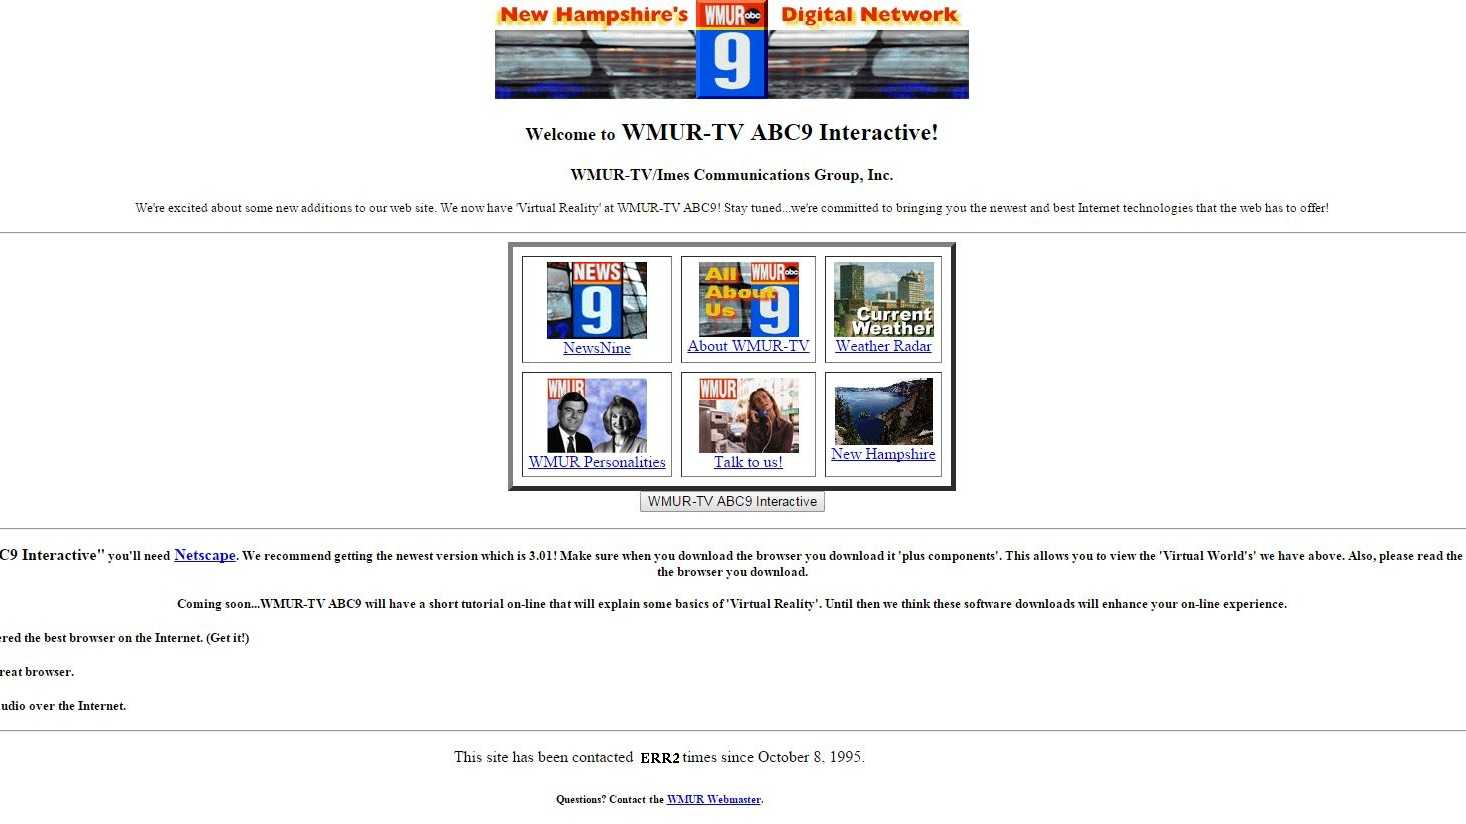 On Thursday Oct. 8, WMUR.com is celebrating its 20th birthday! We thought it would be fun to take a look back at how the site has changed over the years. Here's a shot from 1996.